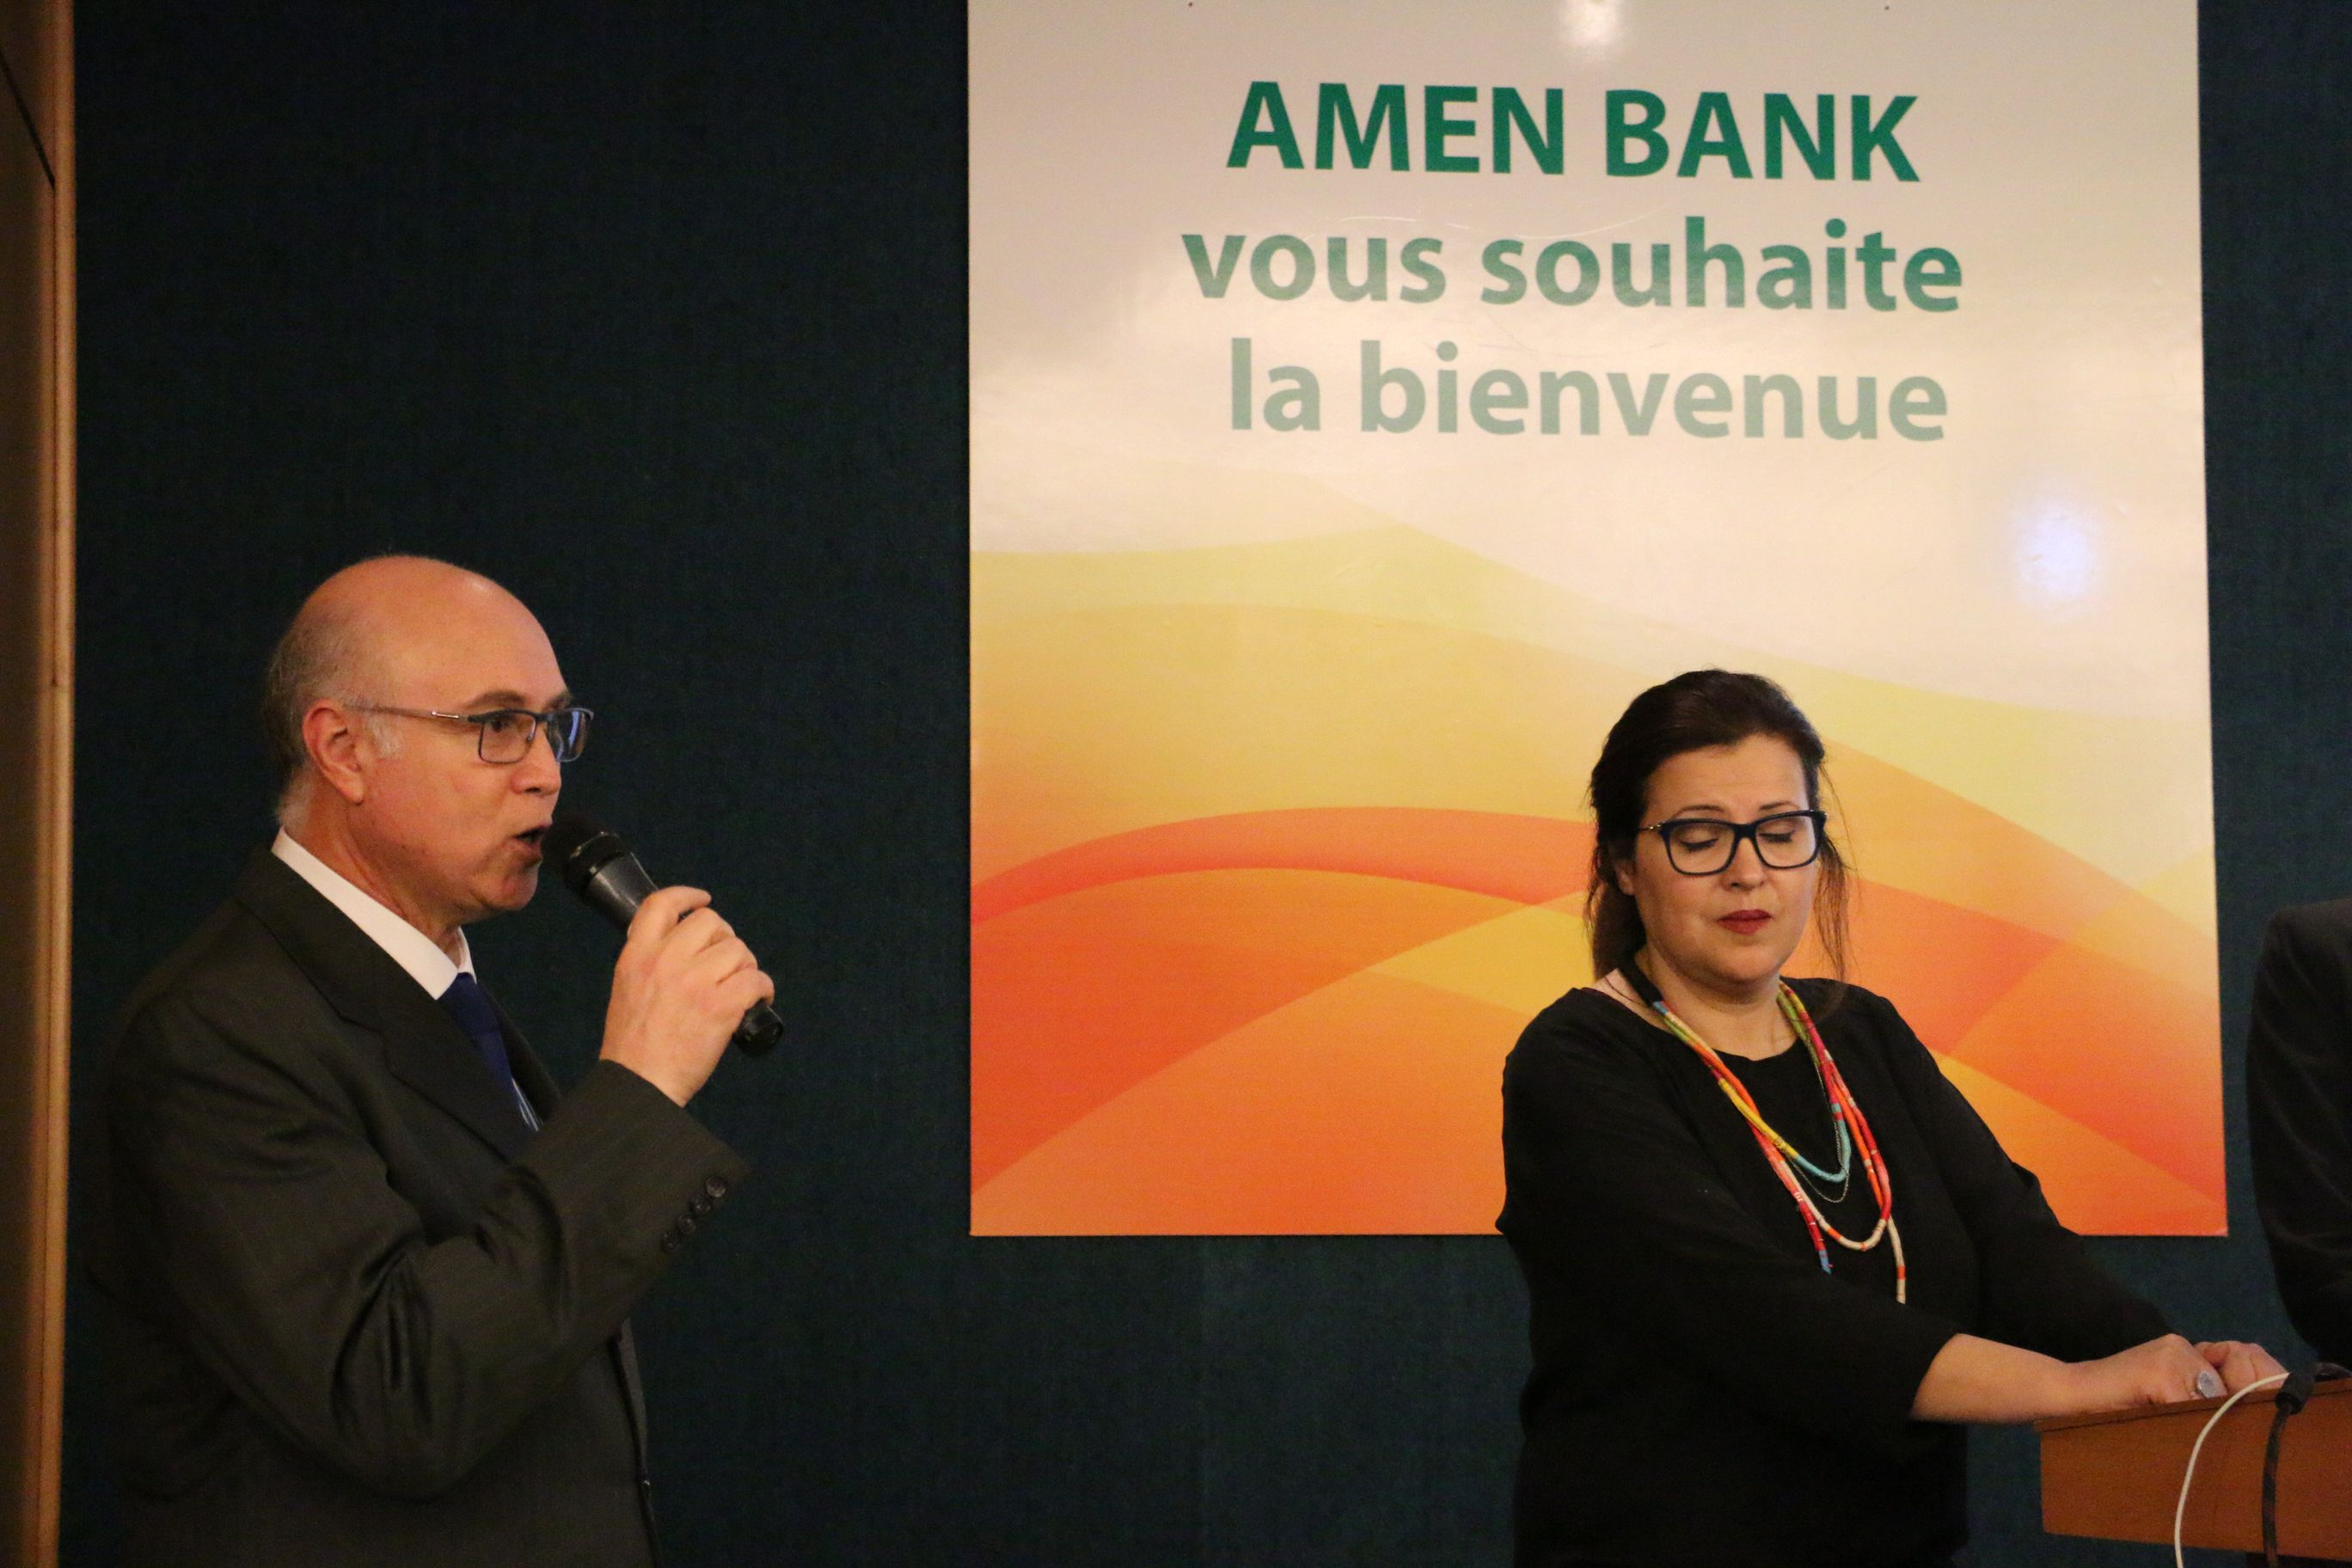 Khaled Mokaddem Directeur Marketing et Communication chez Amen Bank